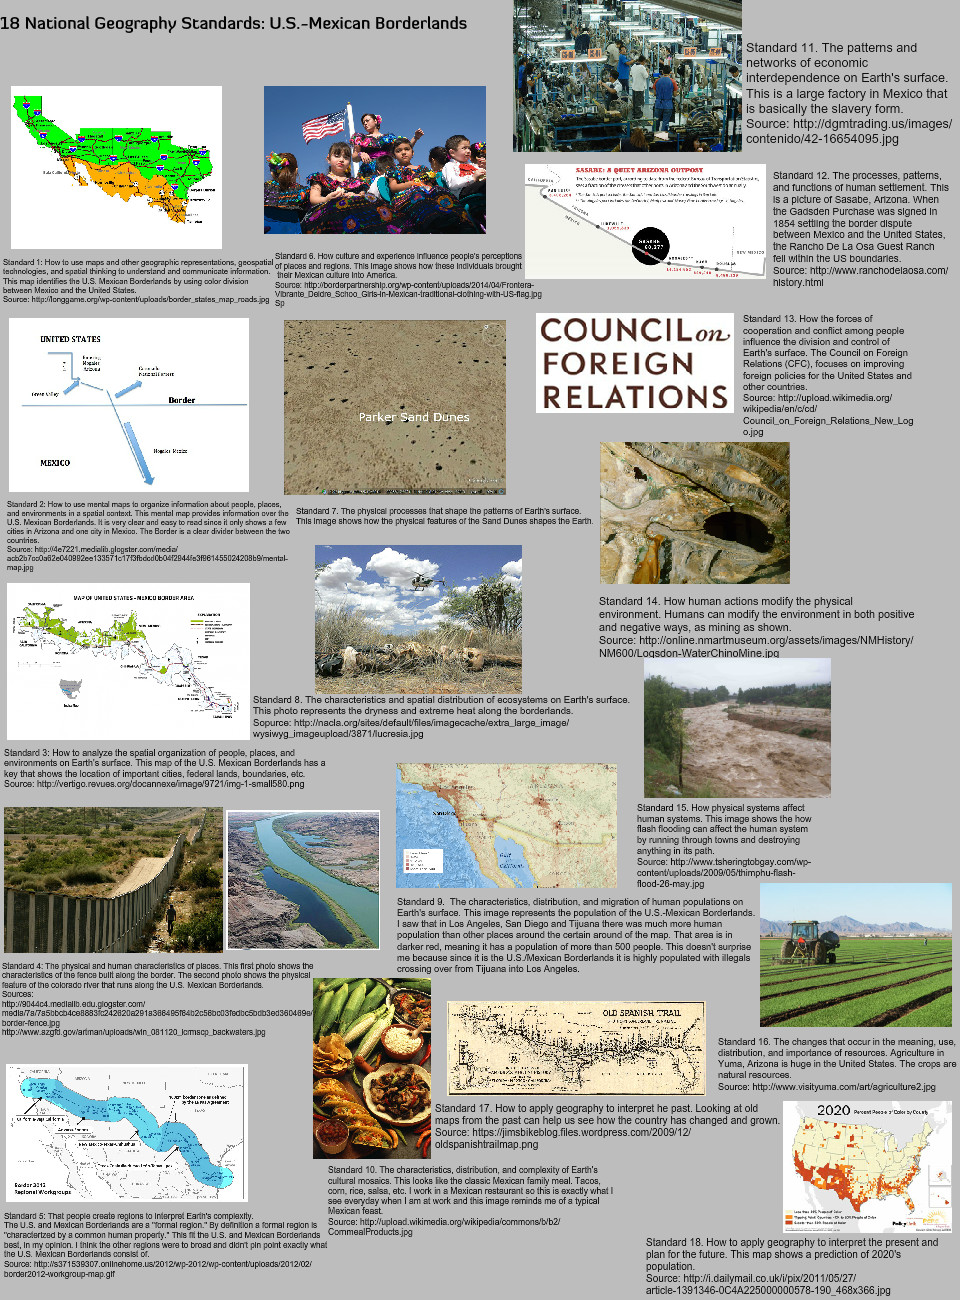 18 National Geography Standards